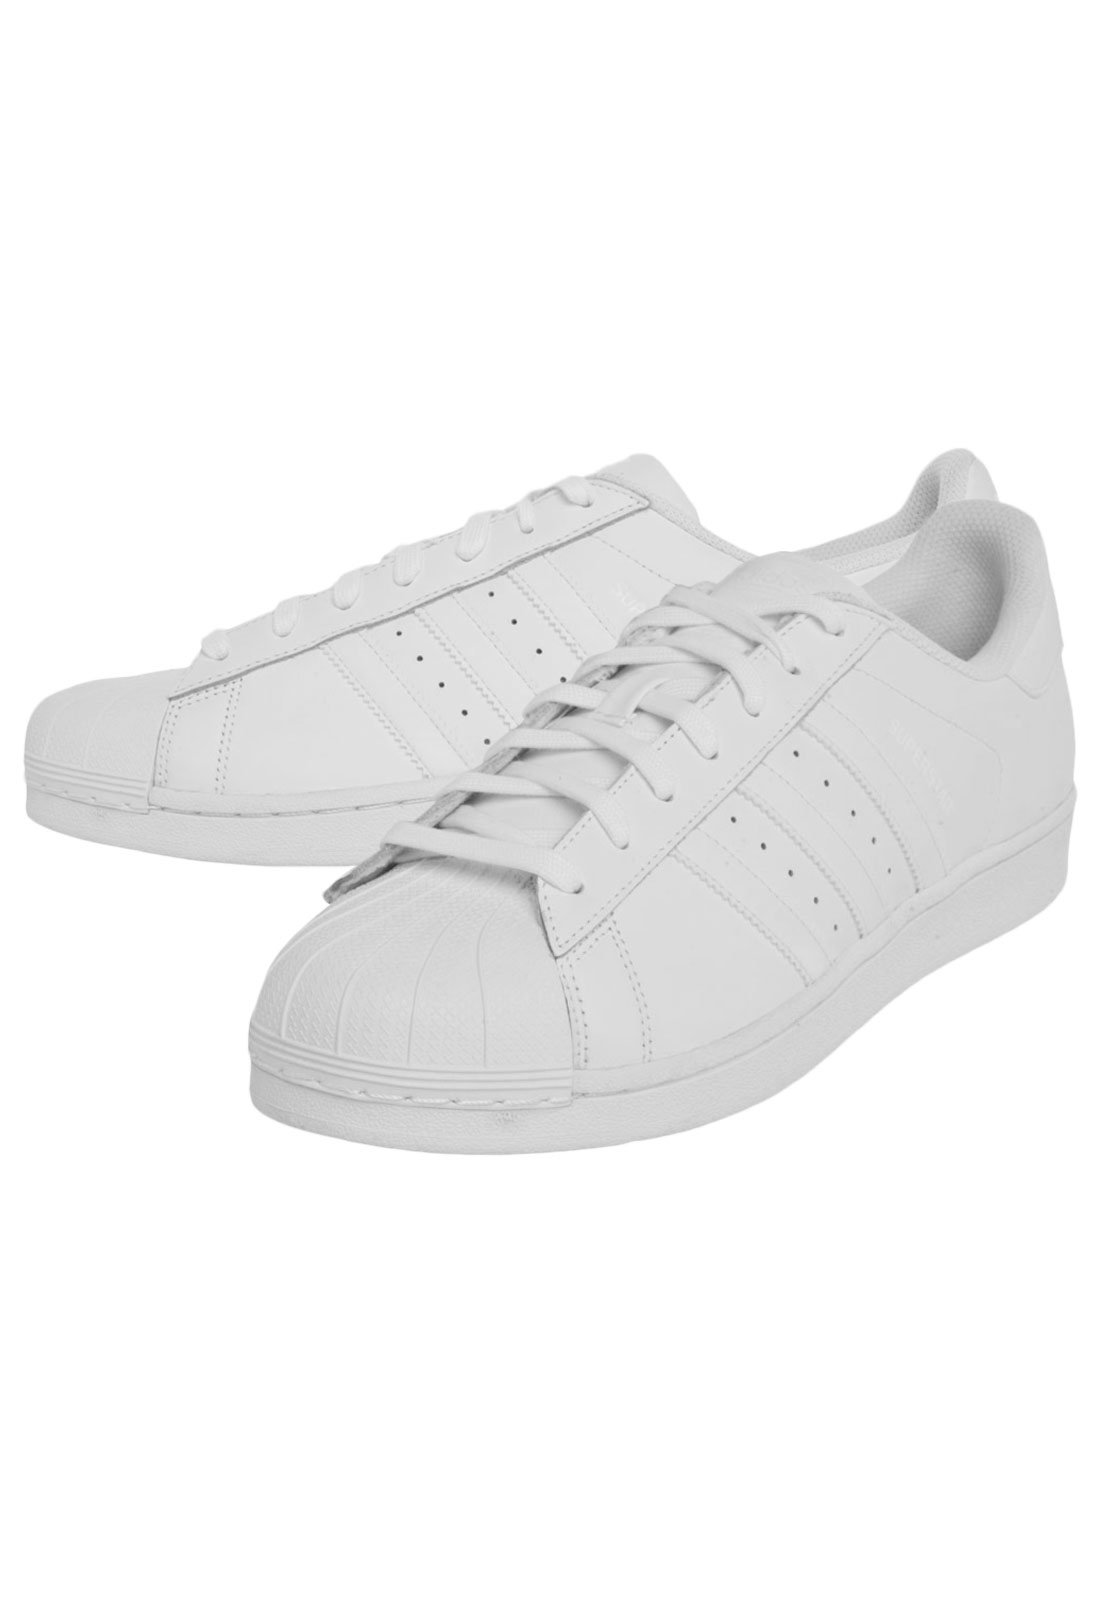 a8a3a8a252 Adidas superstar adv vulc skateboarding originals Cheap Superstar